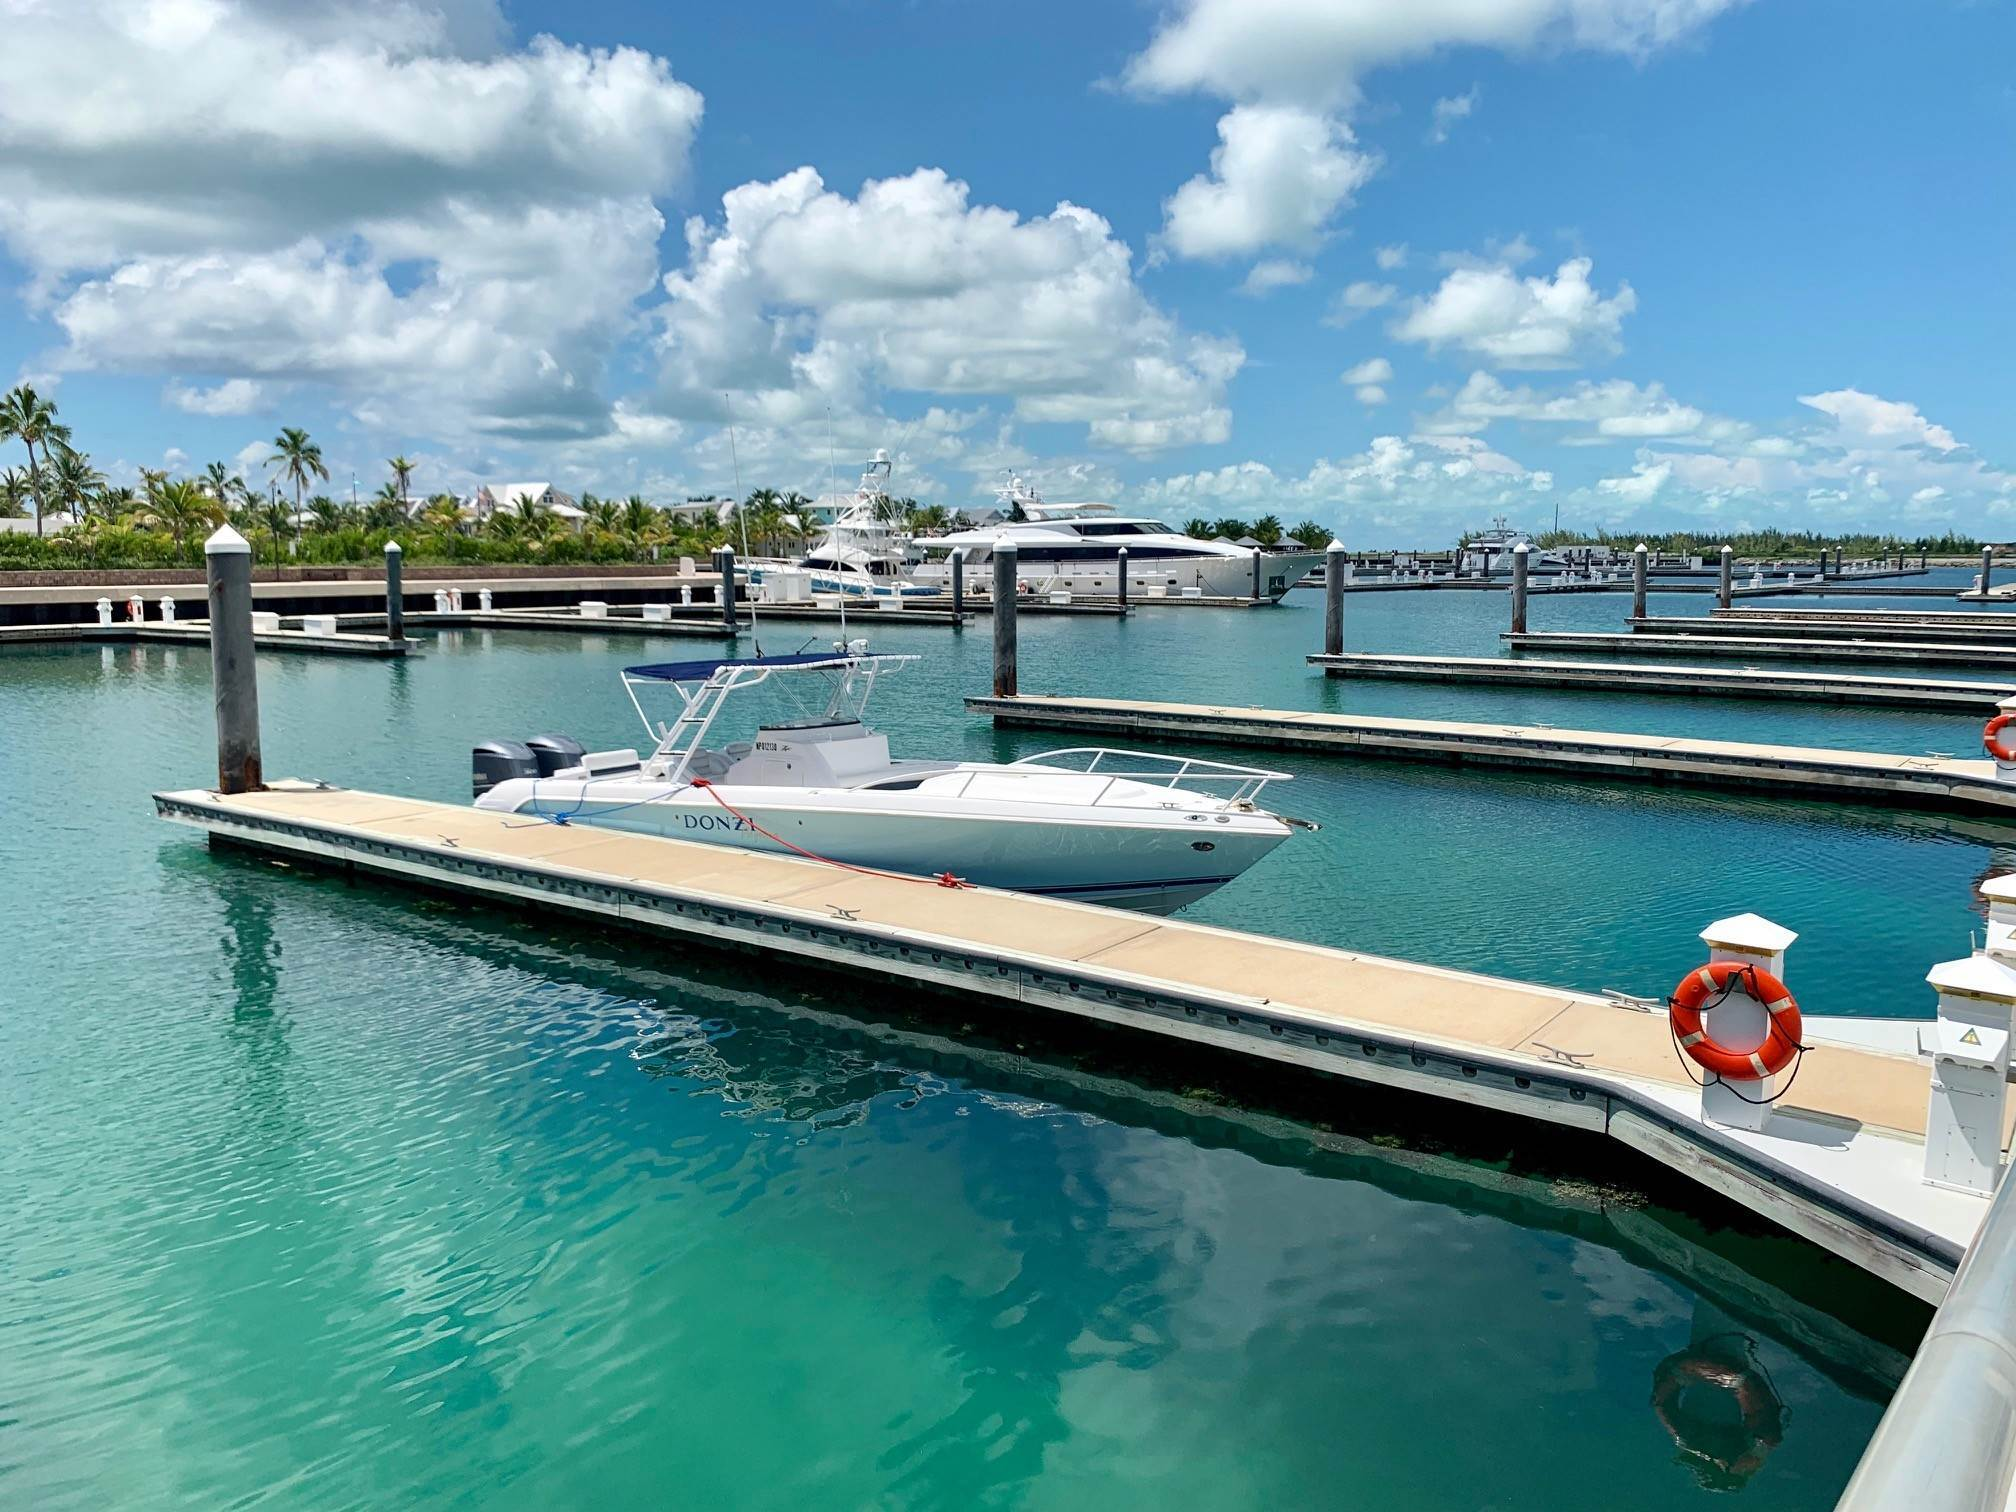 9. Otro por un Venta en Dock Slip #322 Chub Cay Marina, The Berry Islands - MLS 38791 Chub Cay, Islas Berry, Bahamas